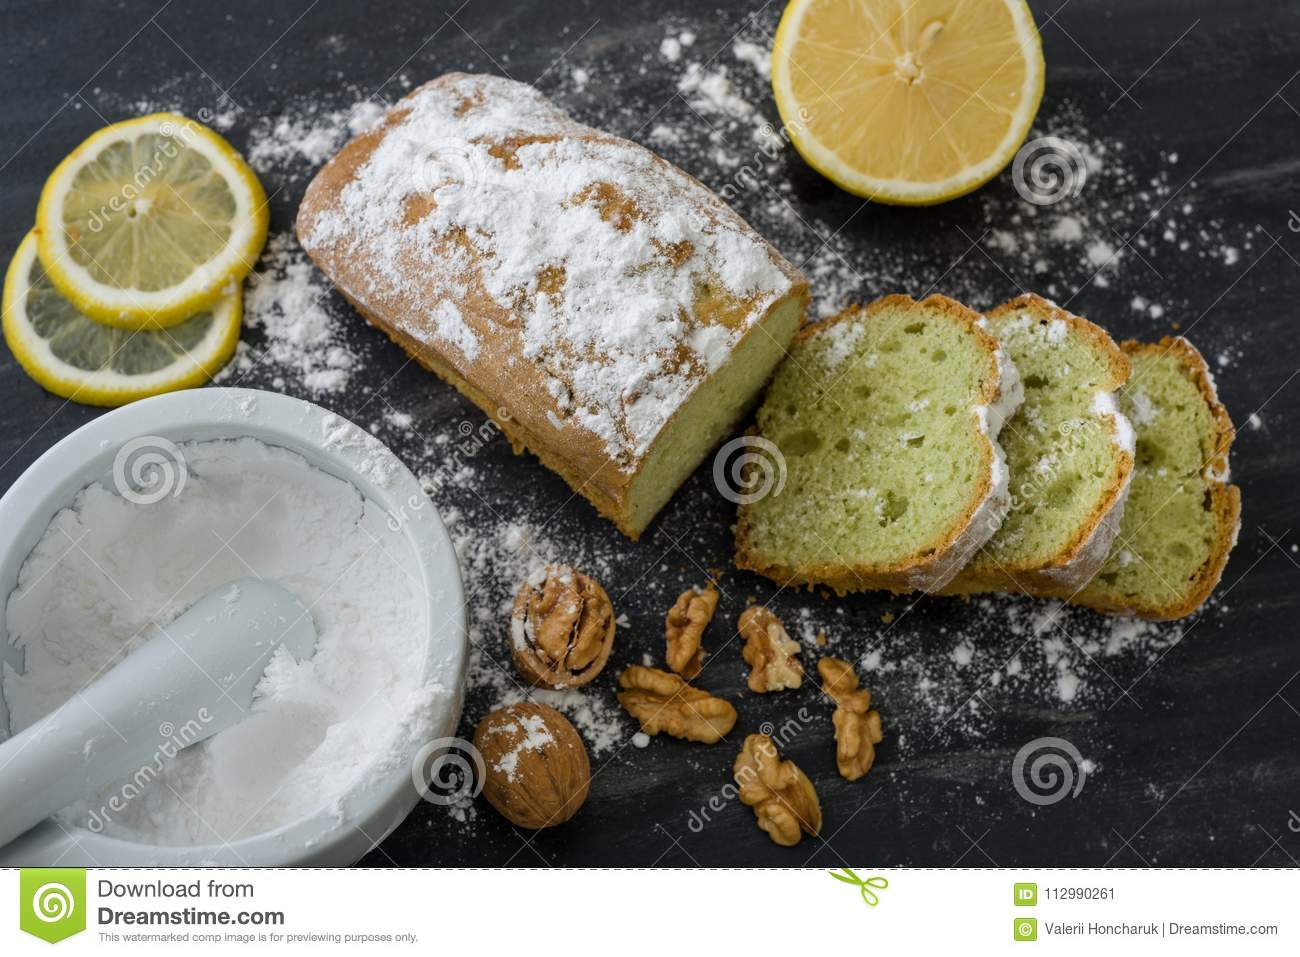 Mint cake on black surface with lemon, nuts, powdered sugar